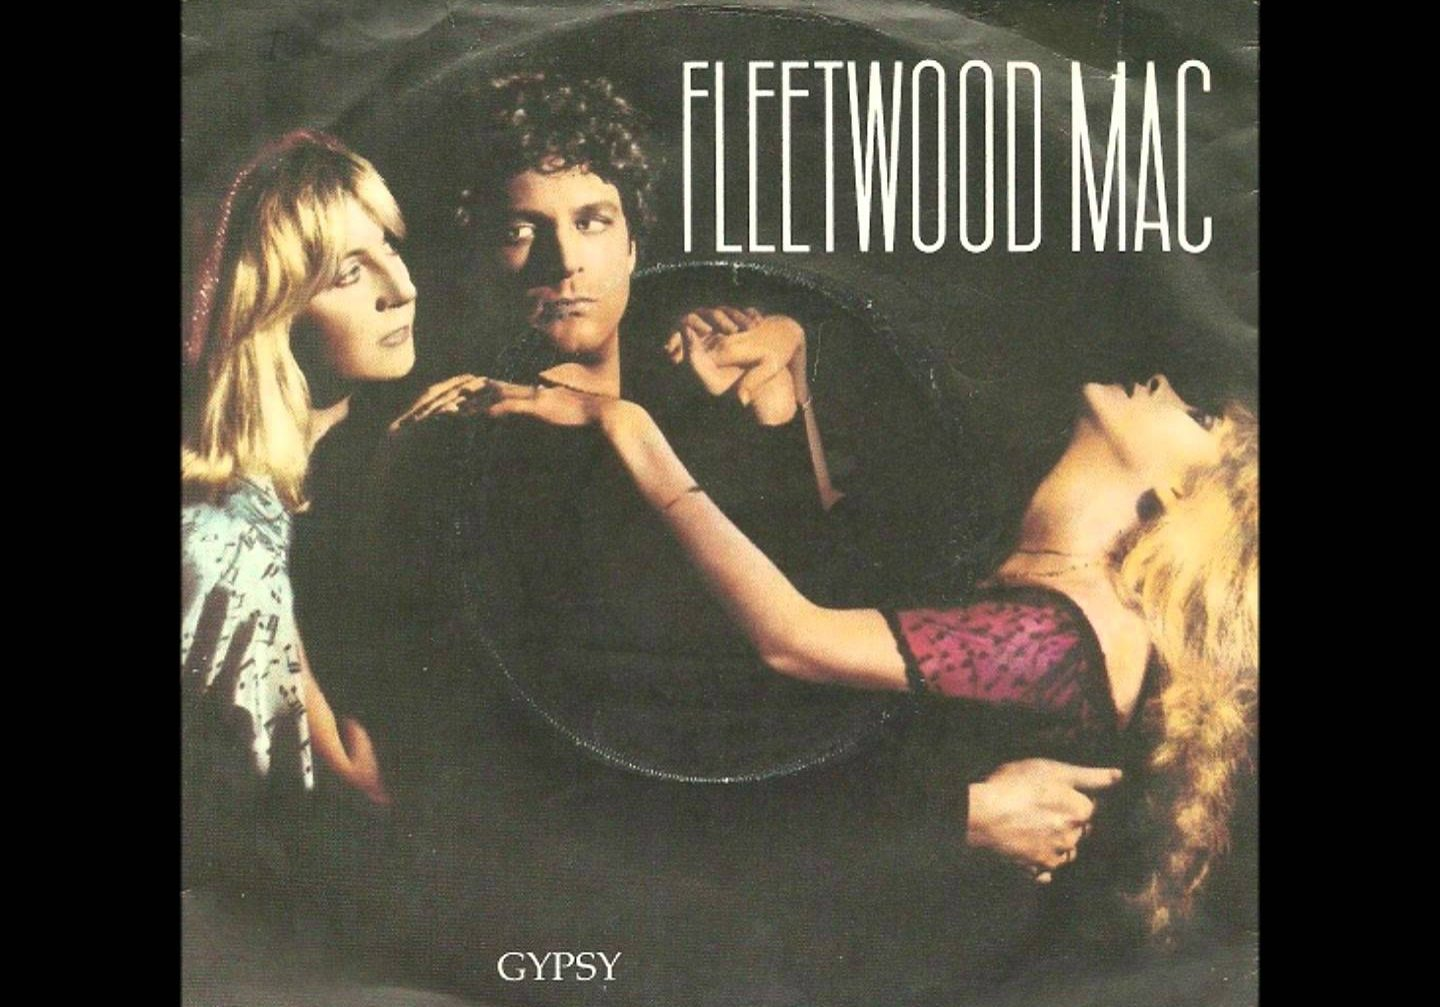 Fleetwood Mac Gypsy